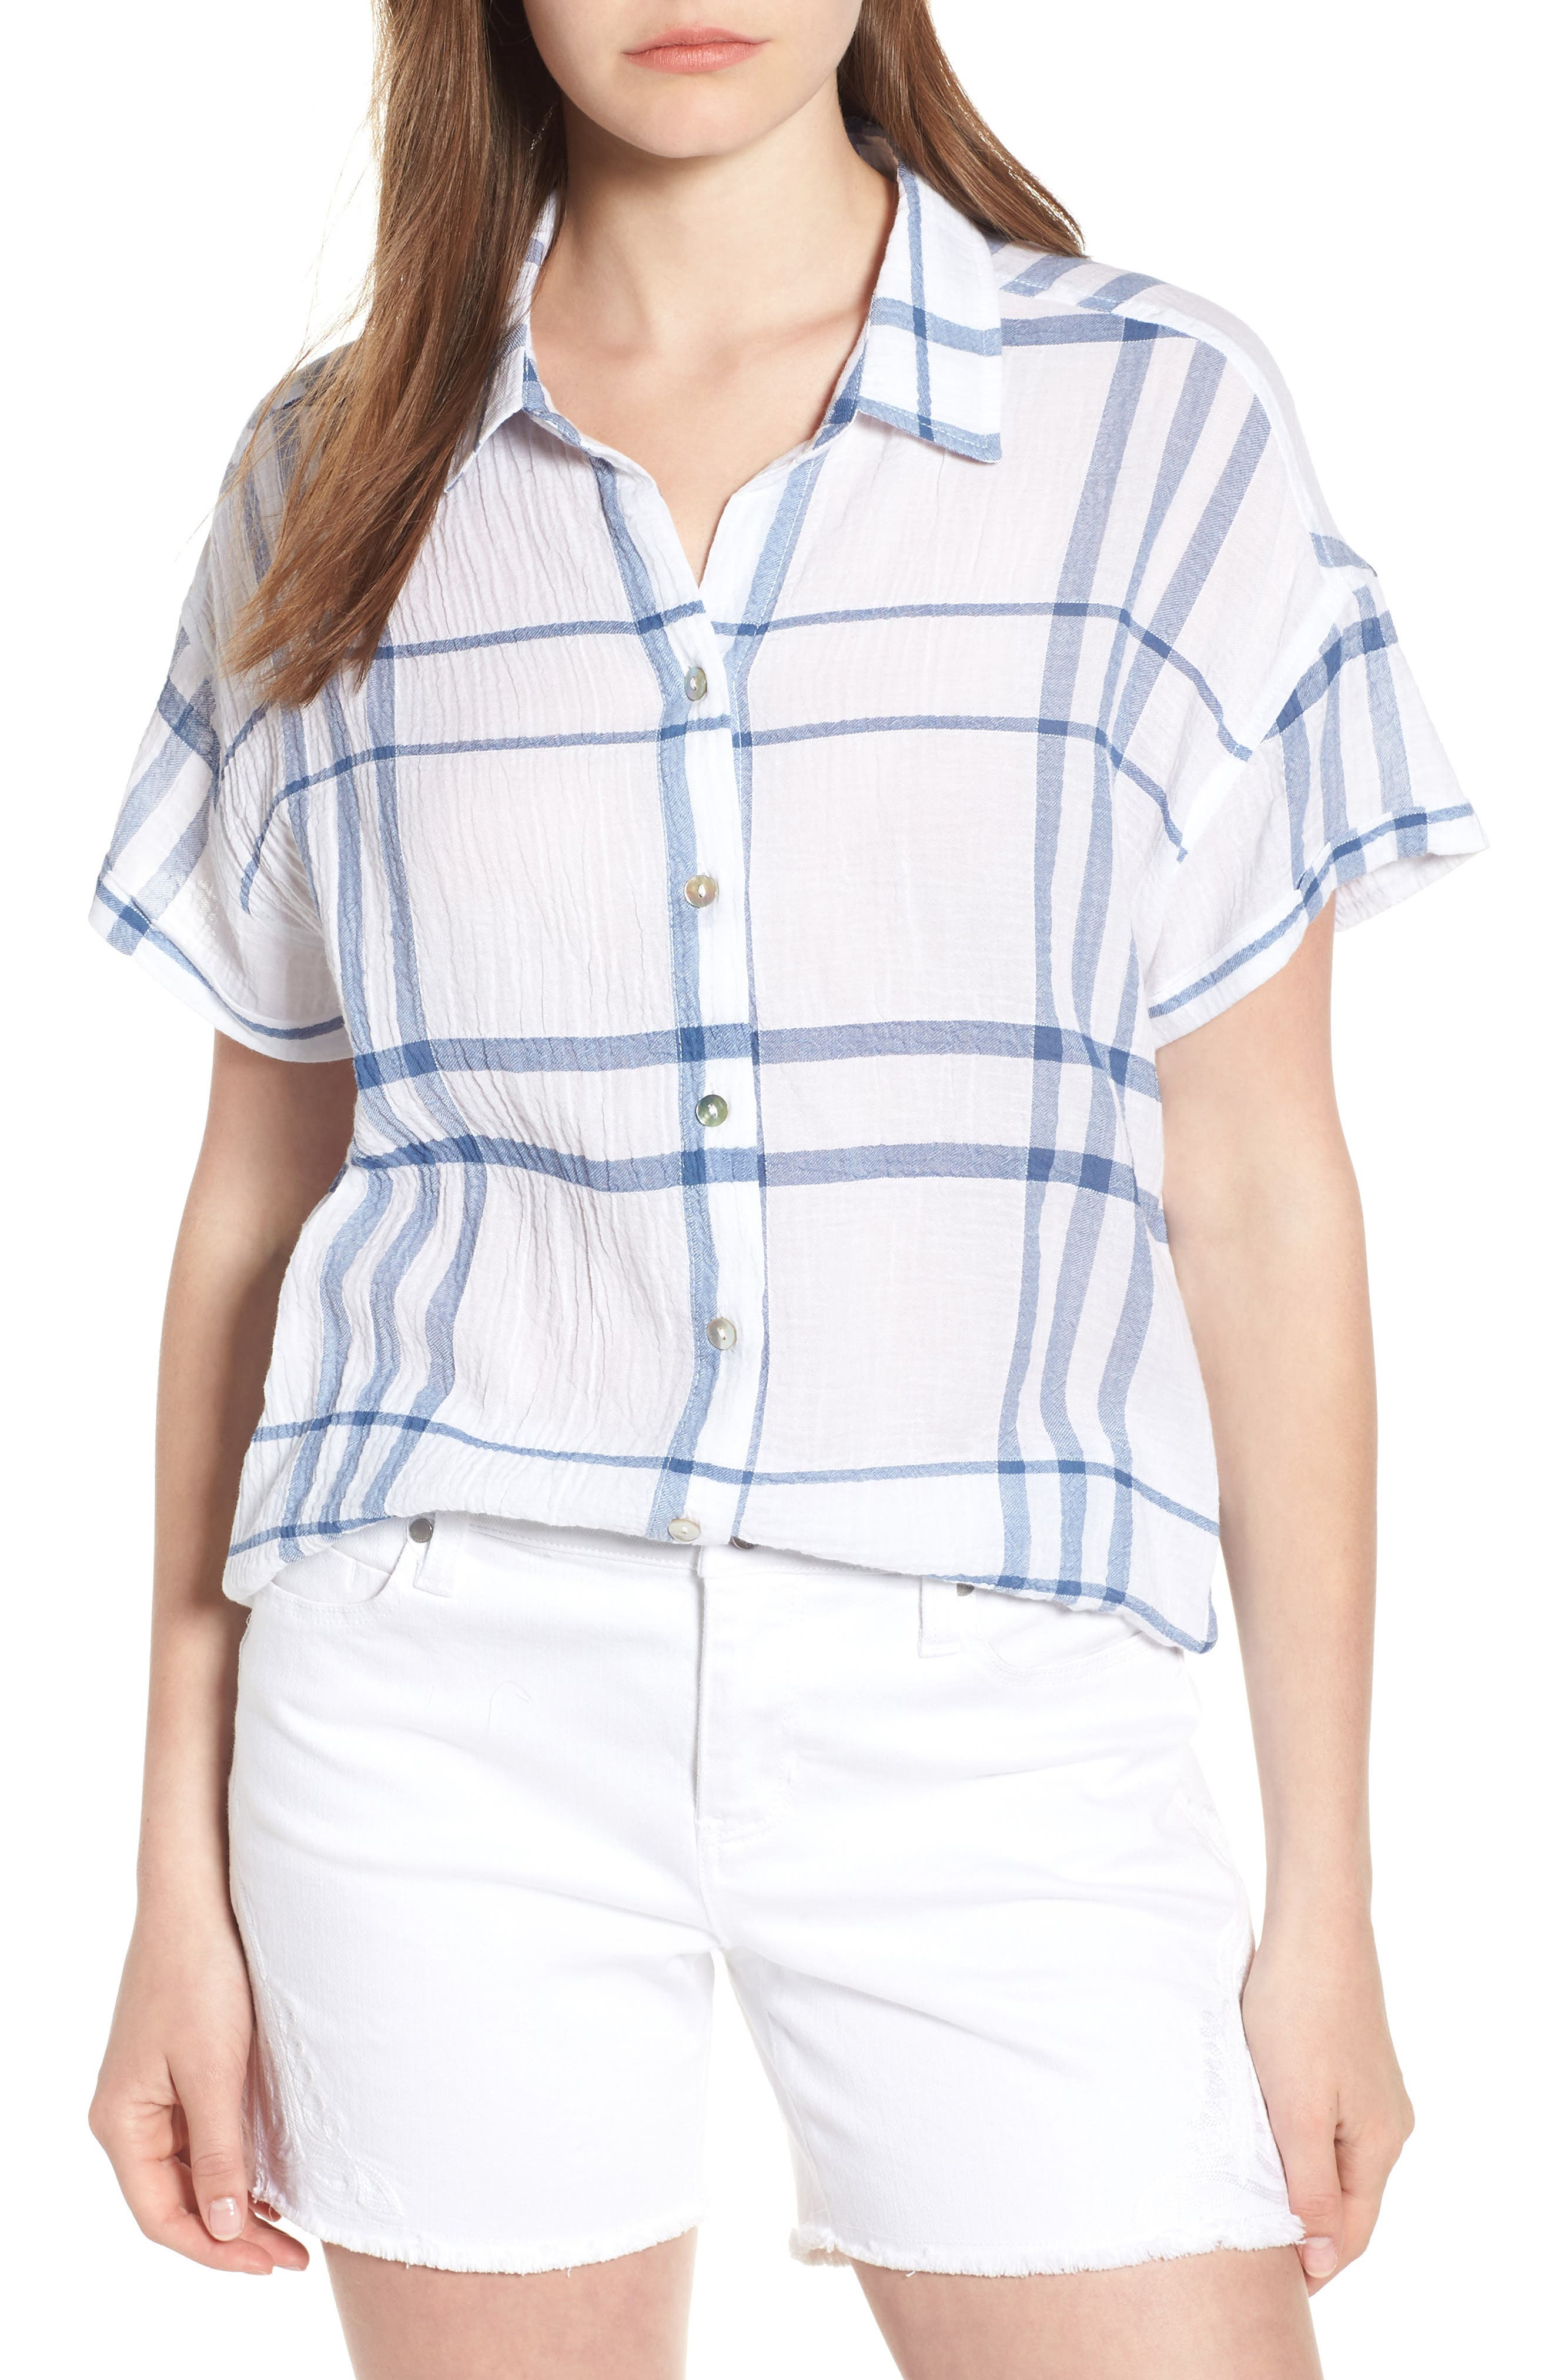 Liverpool Jeans Company Crinkle Cotton Short Sleeve Blouse